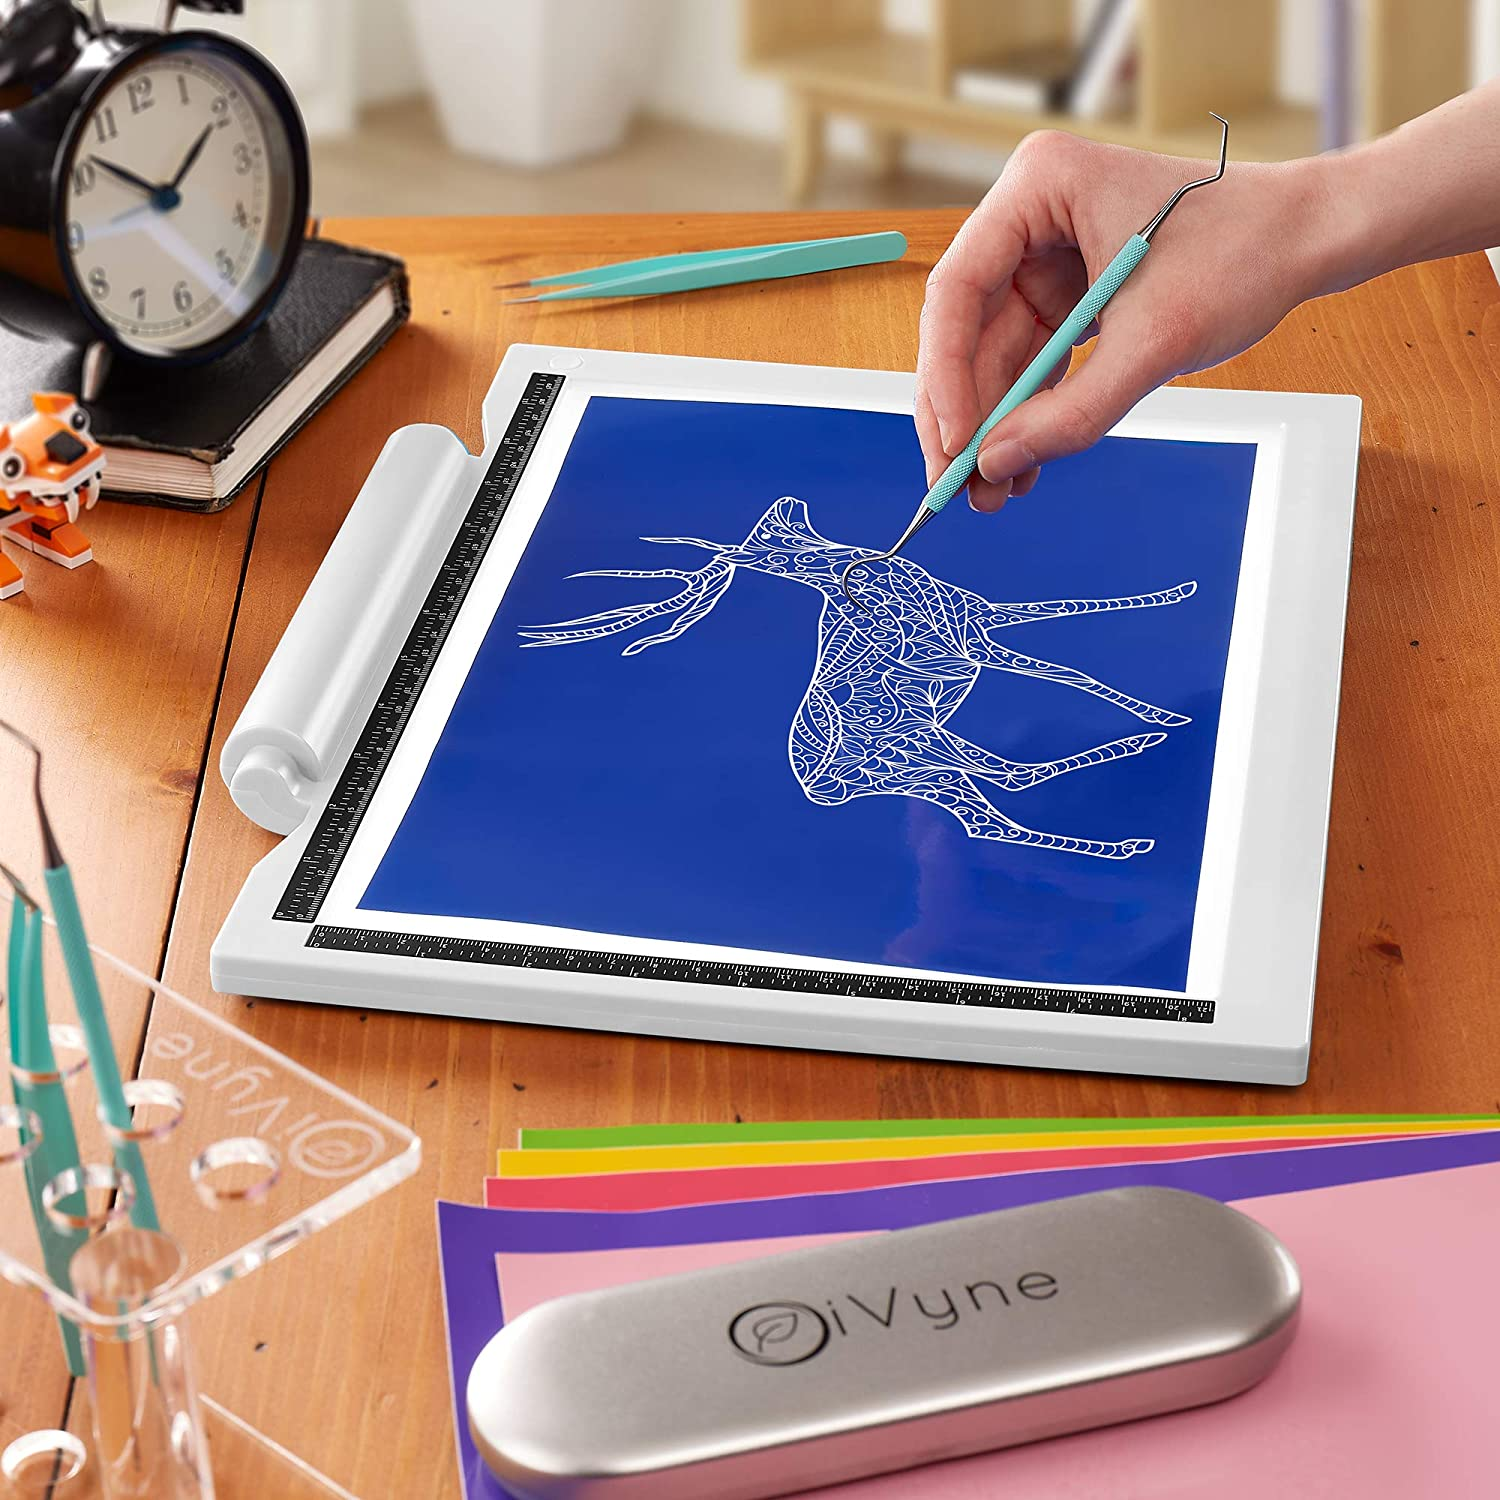 Drawing and HTV Vinyl Sketching Batteries Not Included -for Vinyl Weeding Tracing Battery /& Cable Powered LED Light Box iVyne Crafting Light Pad Crafting White